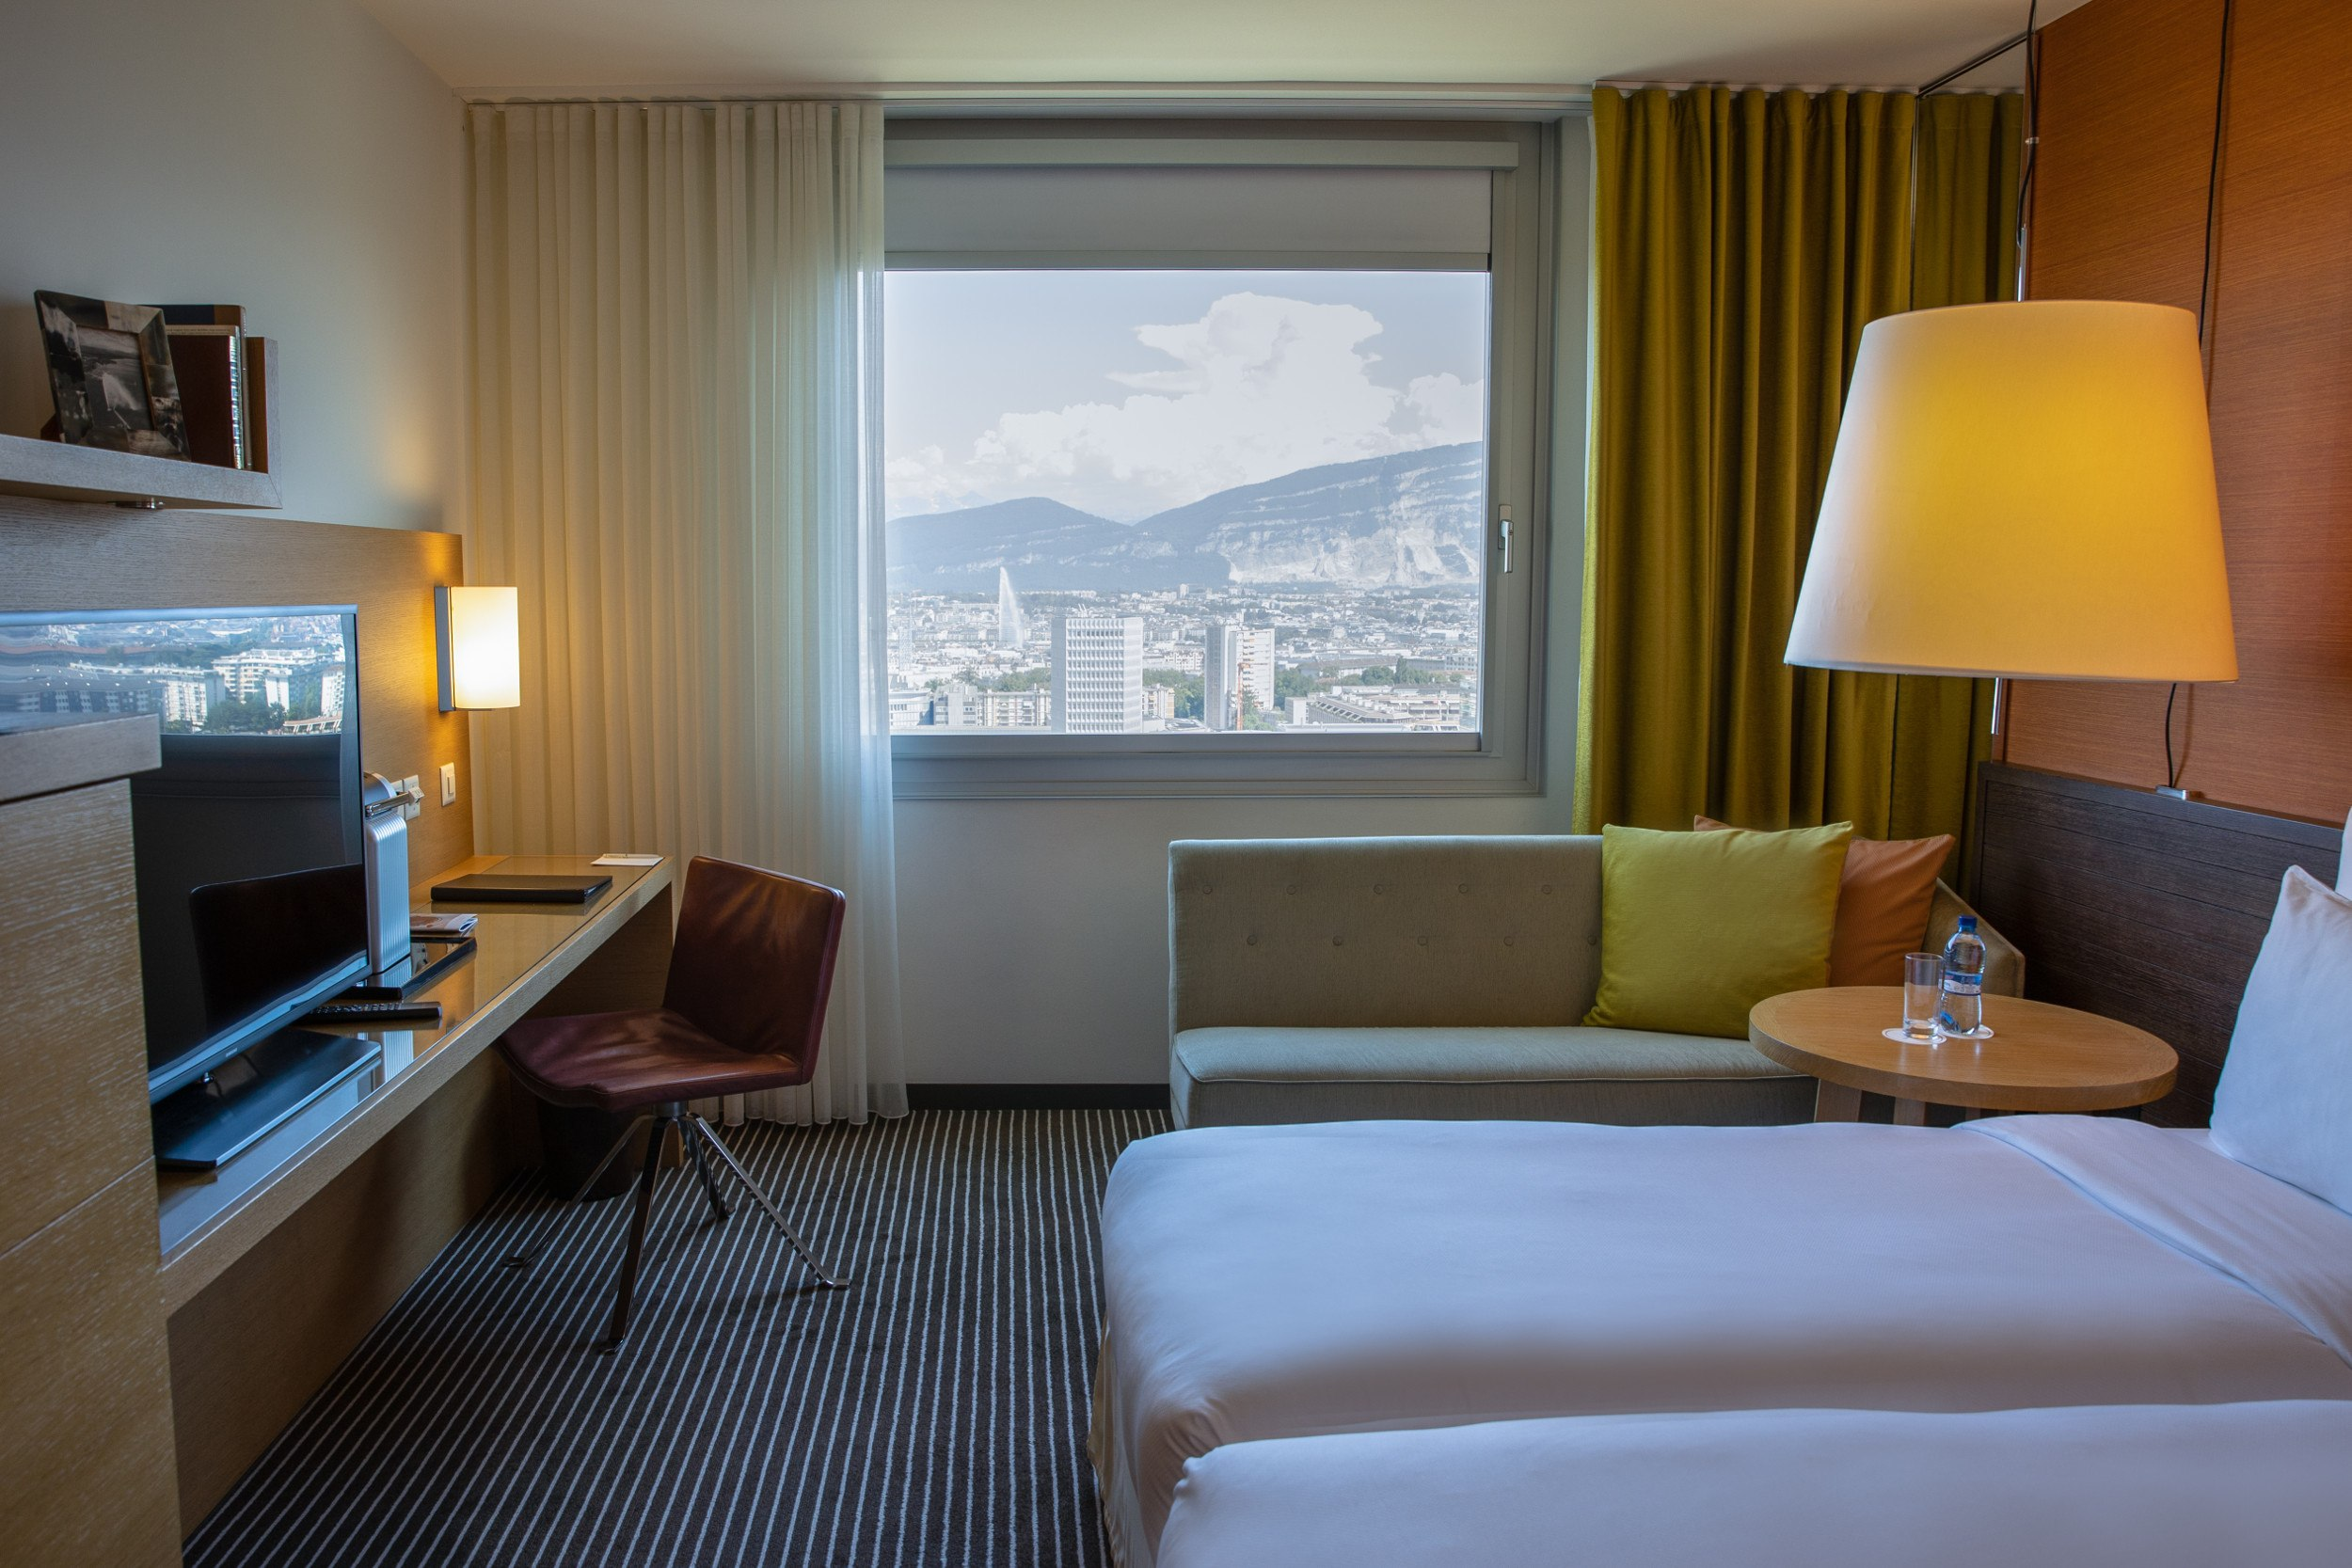 InterContinental-Geneva-Hotel-Superior-lake-view-room-2